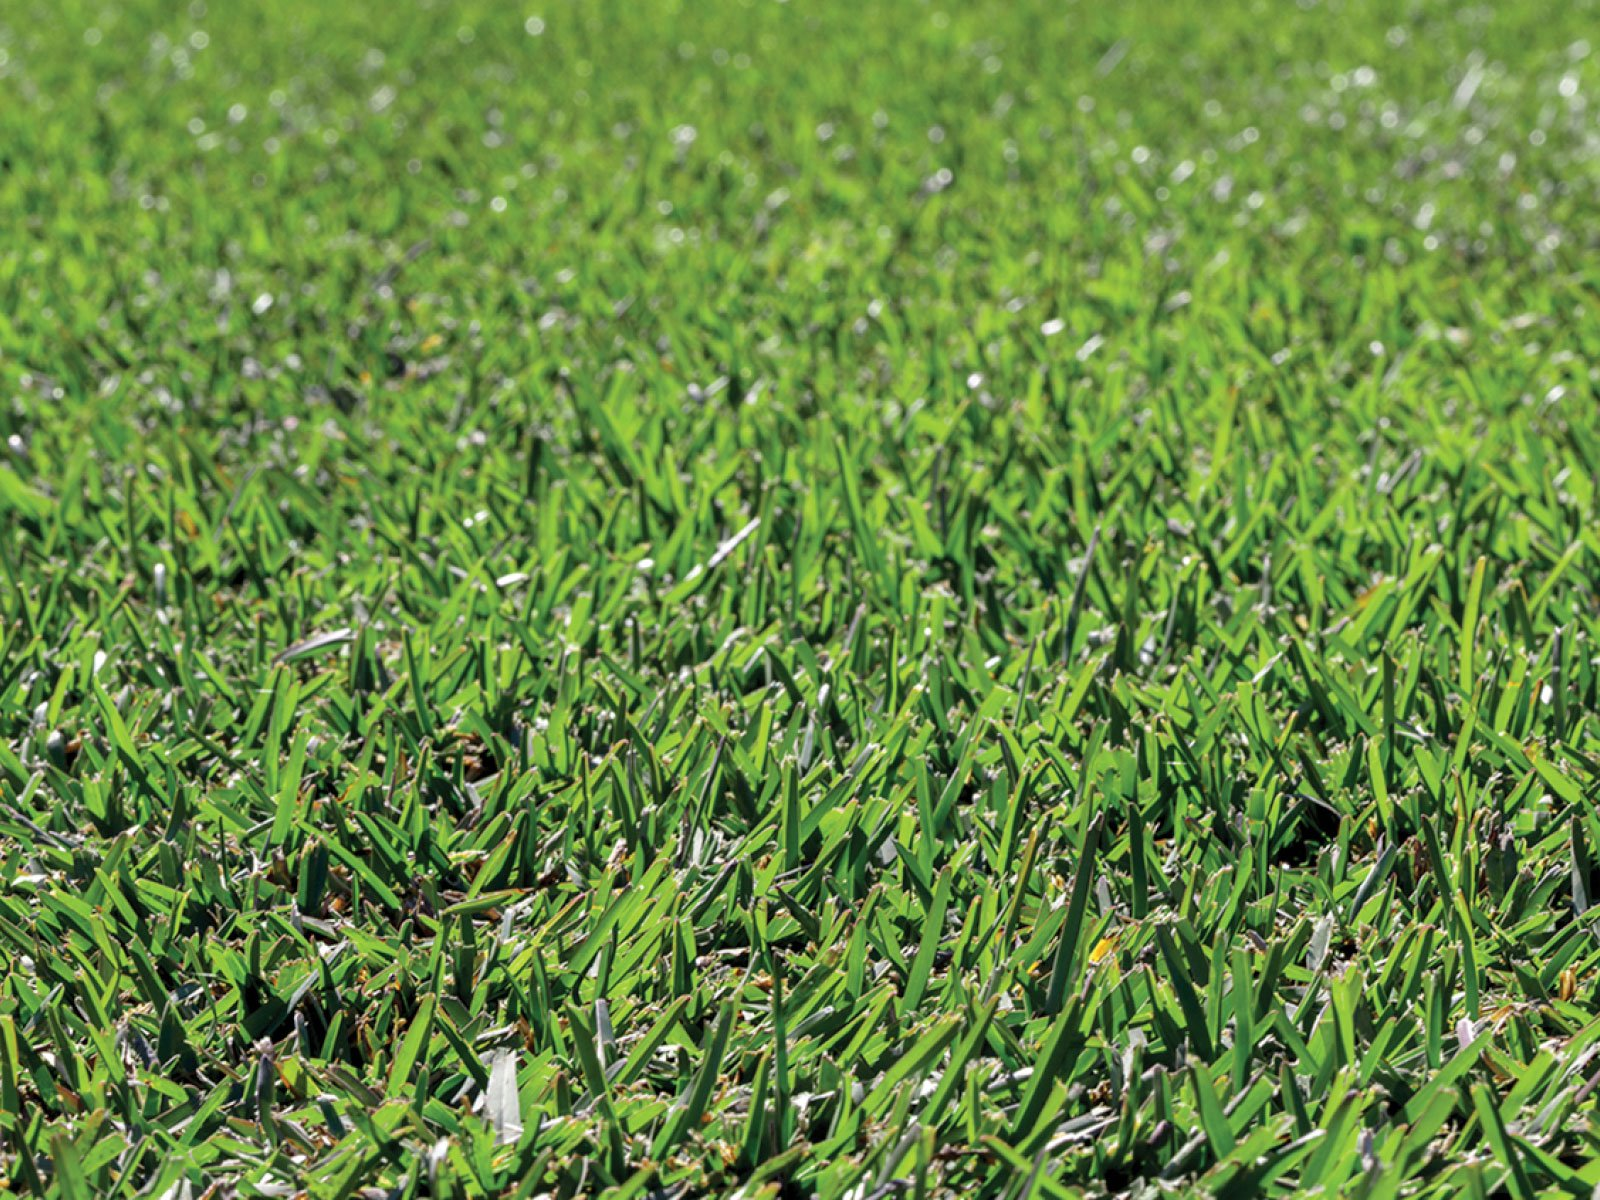 Environmentally-friendly lawns